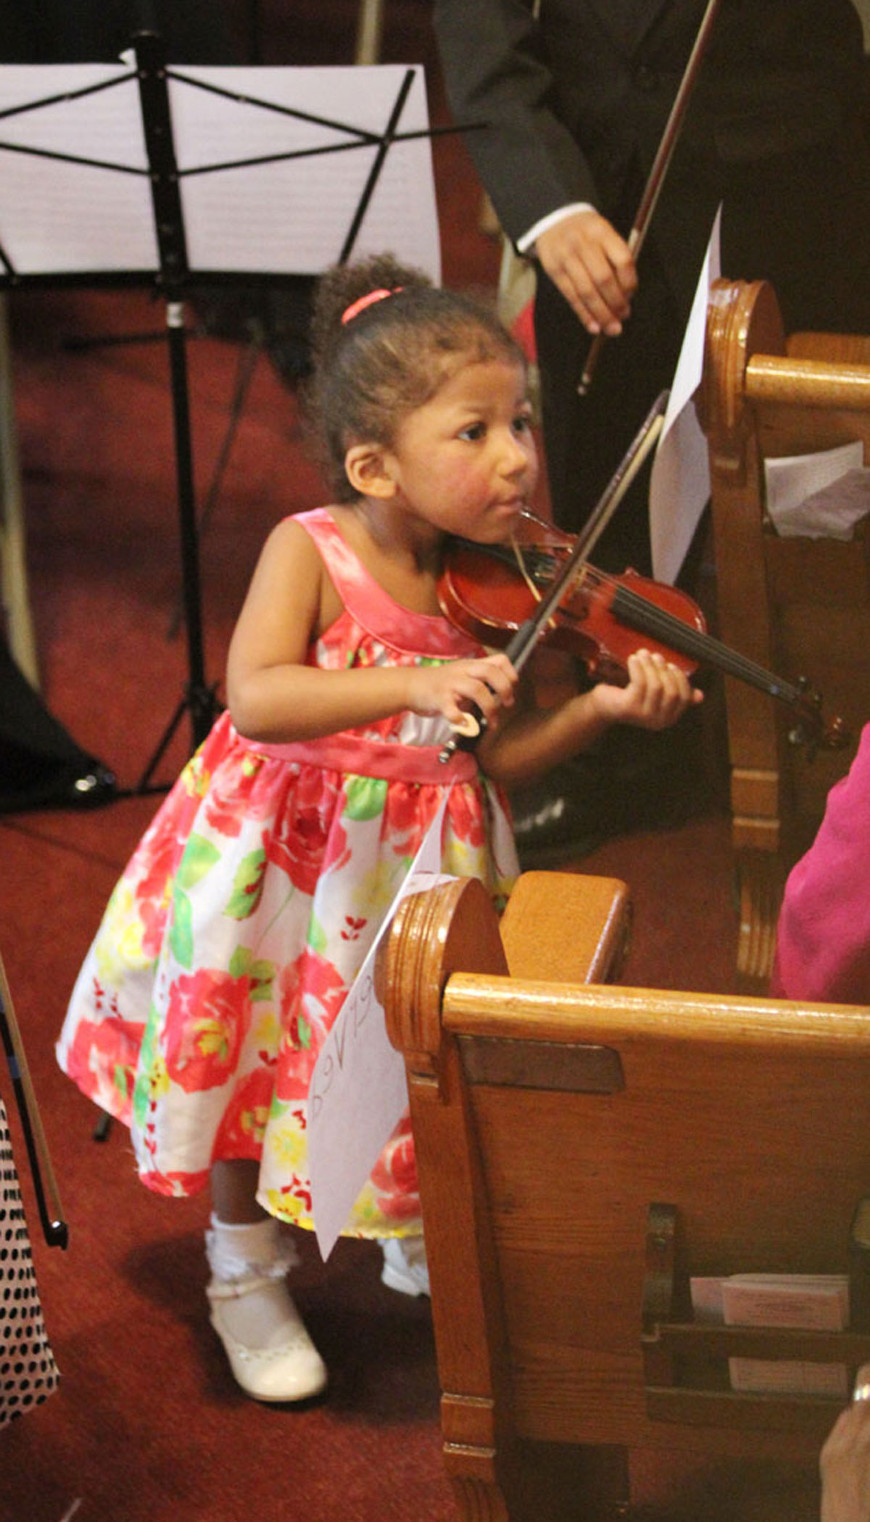 [9] One of the youngest Gateways violinist performed at New Bethel CME Church